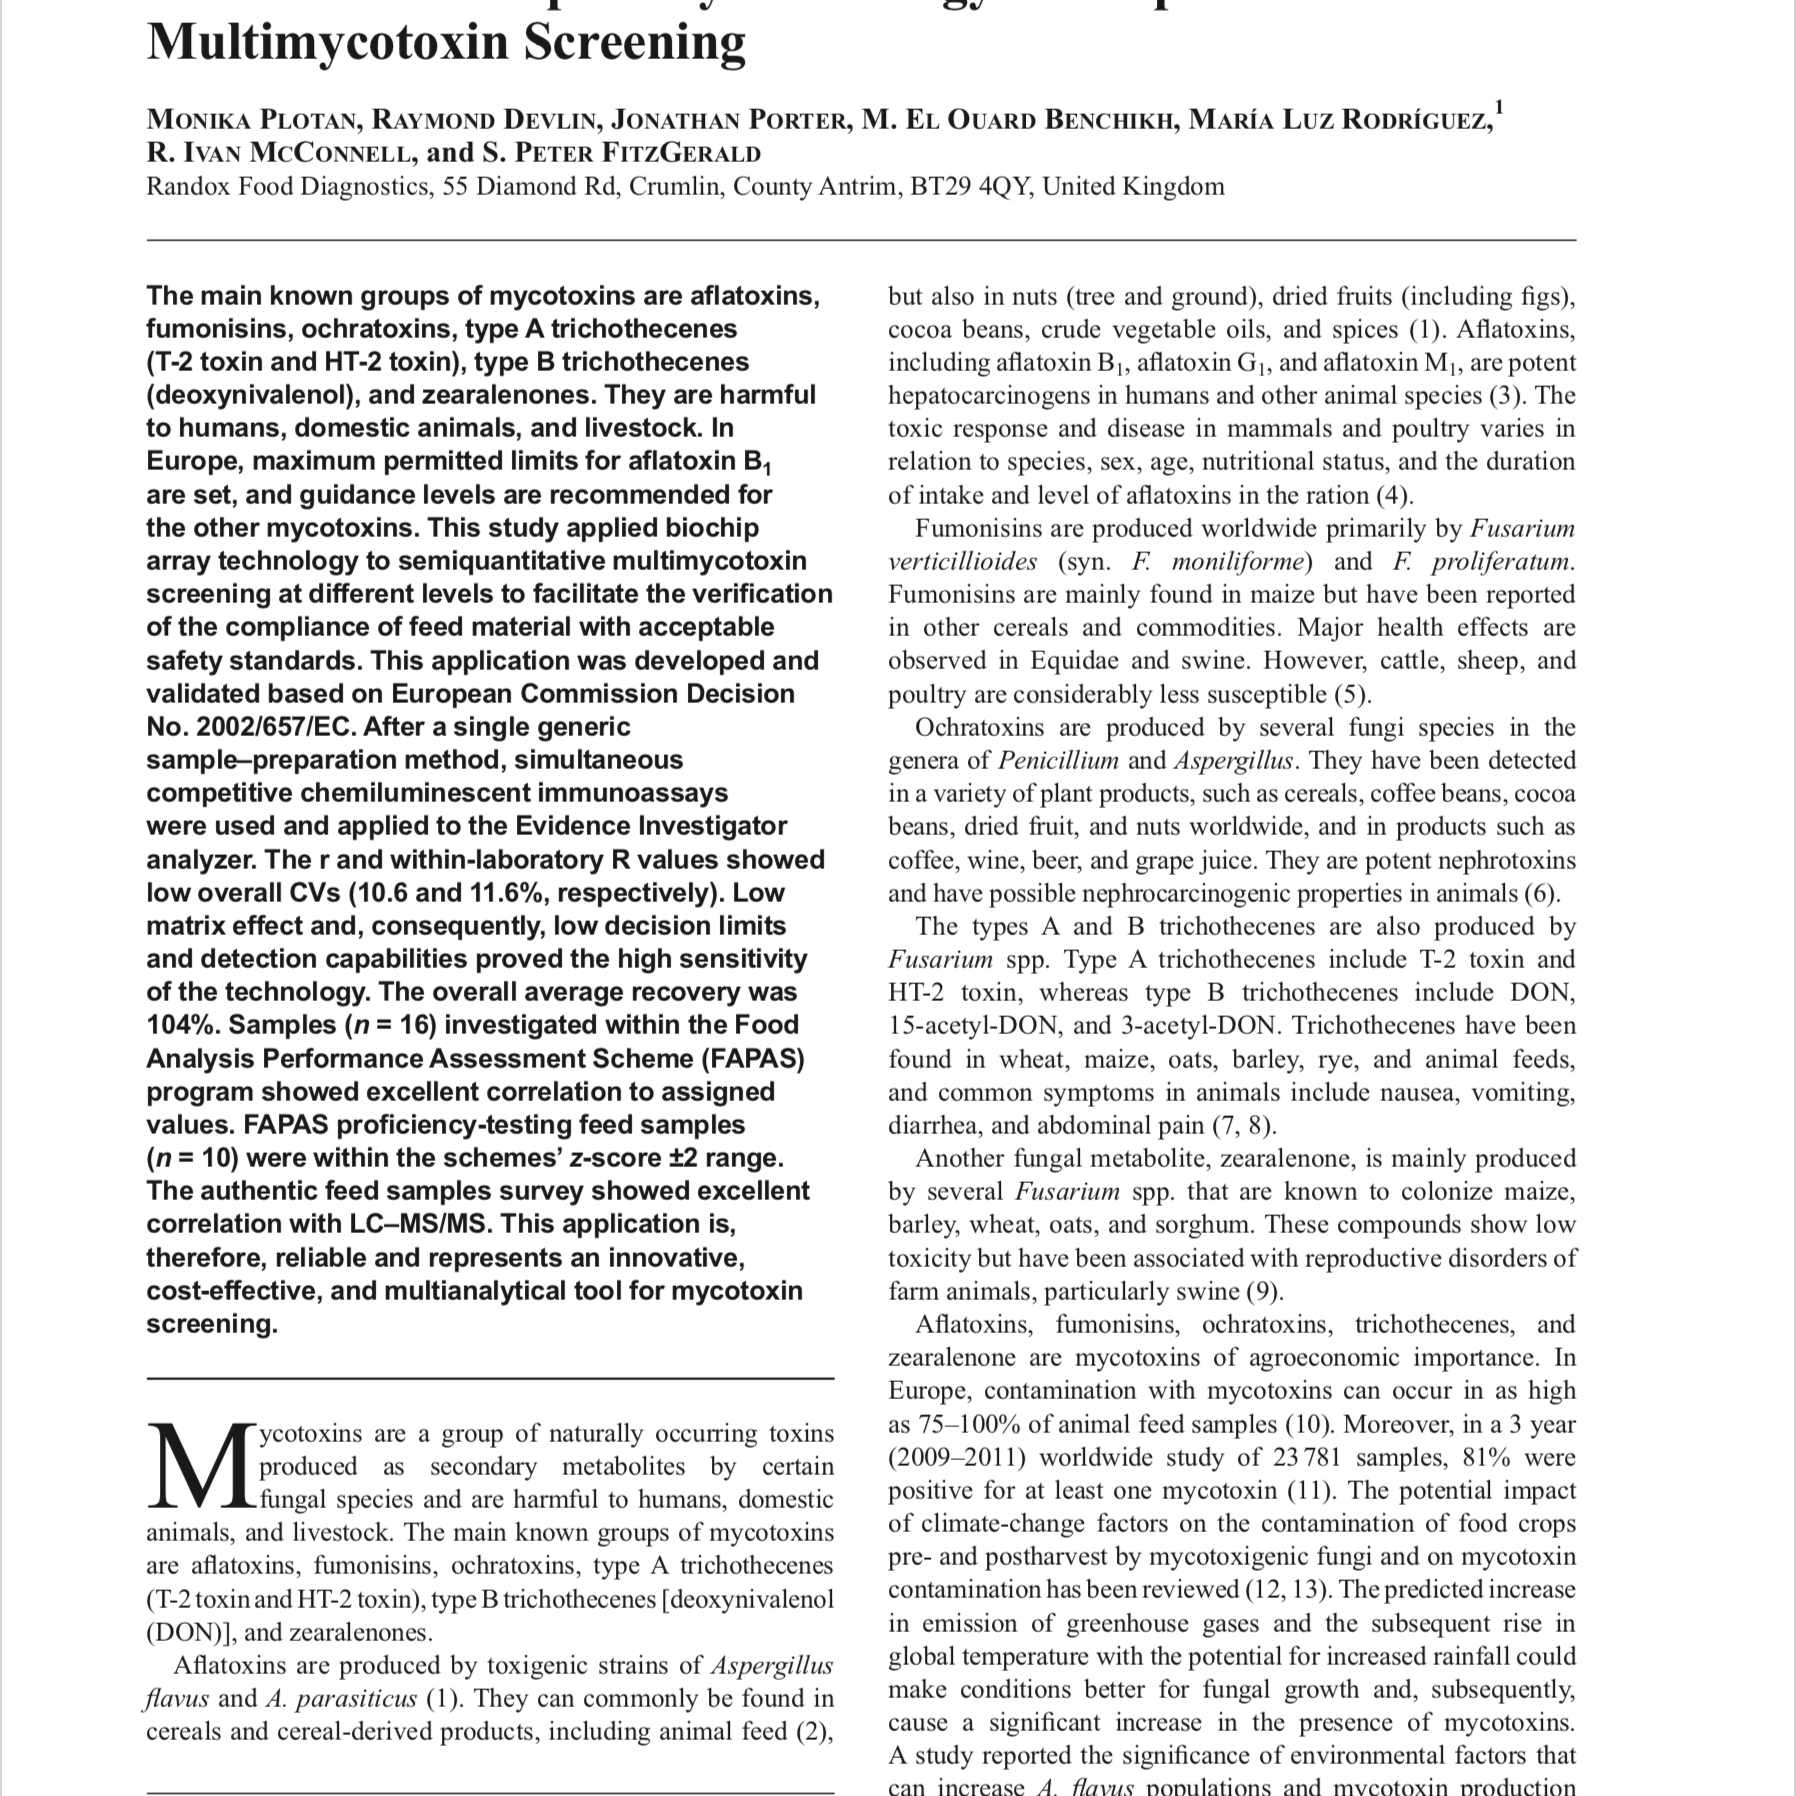 The Use of Biochip Array Technology for Rapid Multimycotoxin Screening